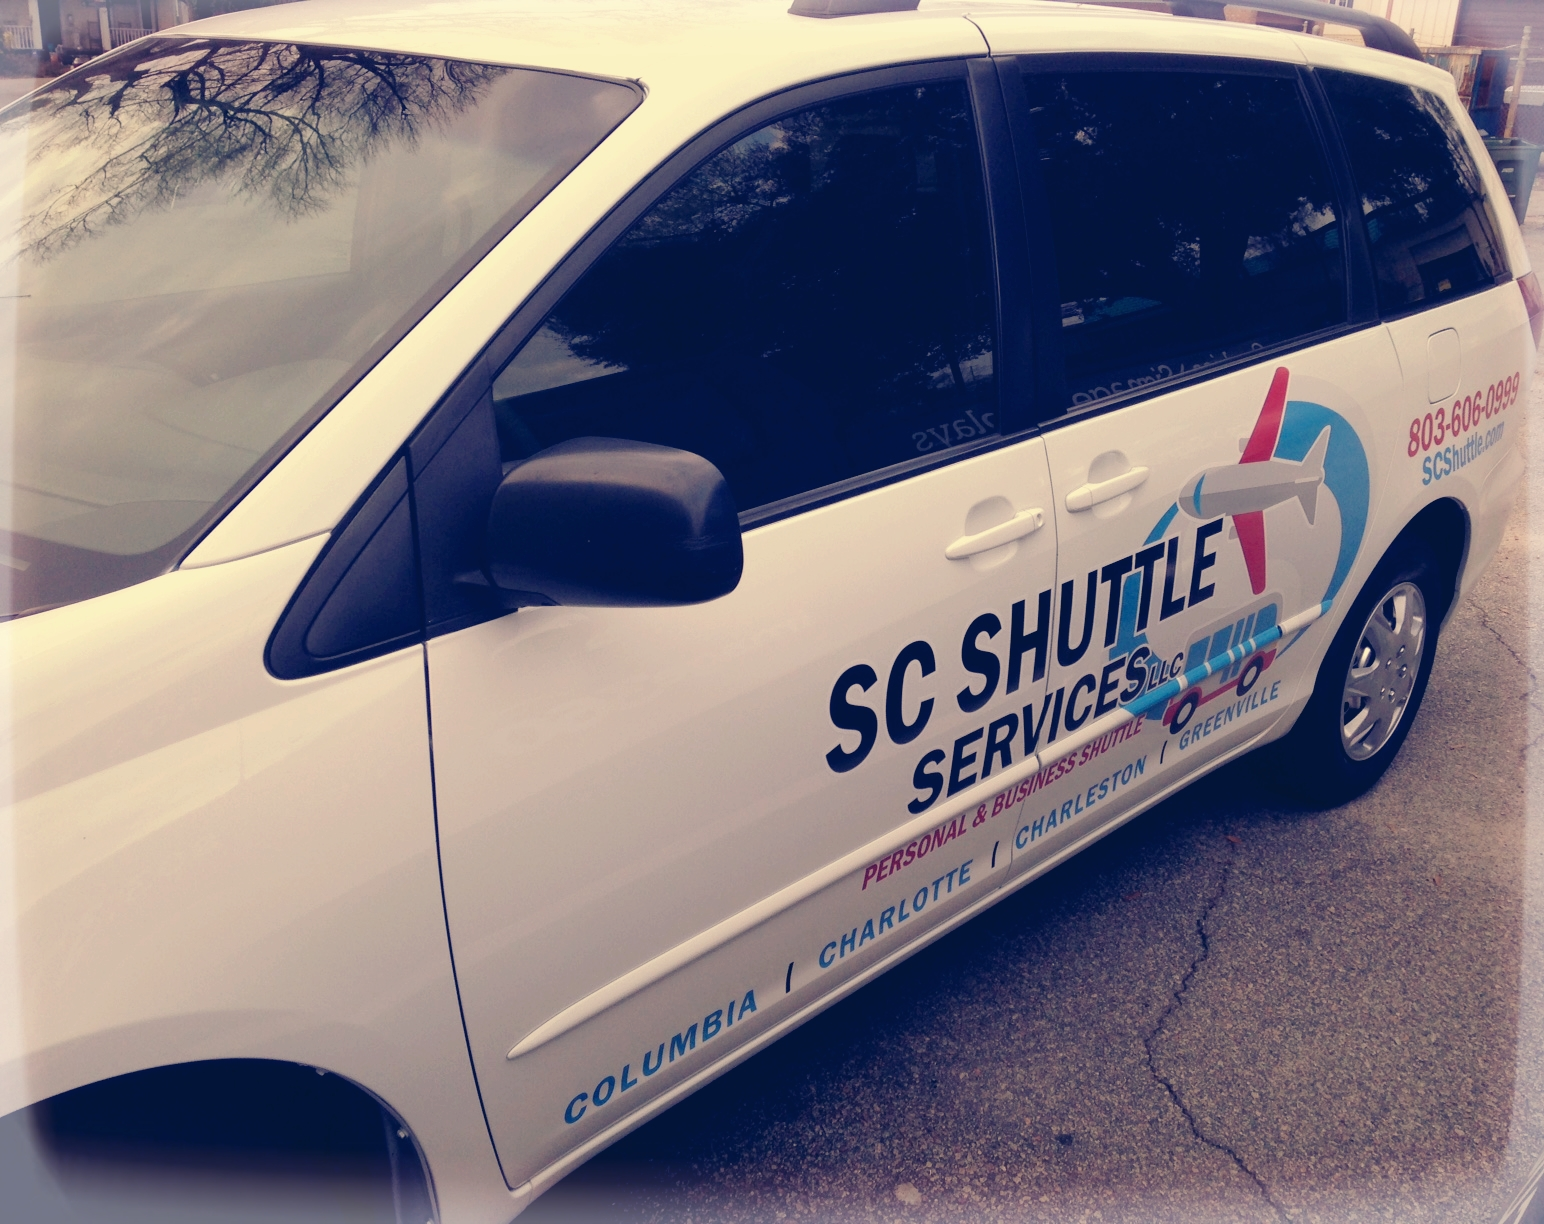 SC Shuttle About Us - The story behind SC Shuttle Services